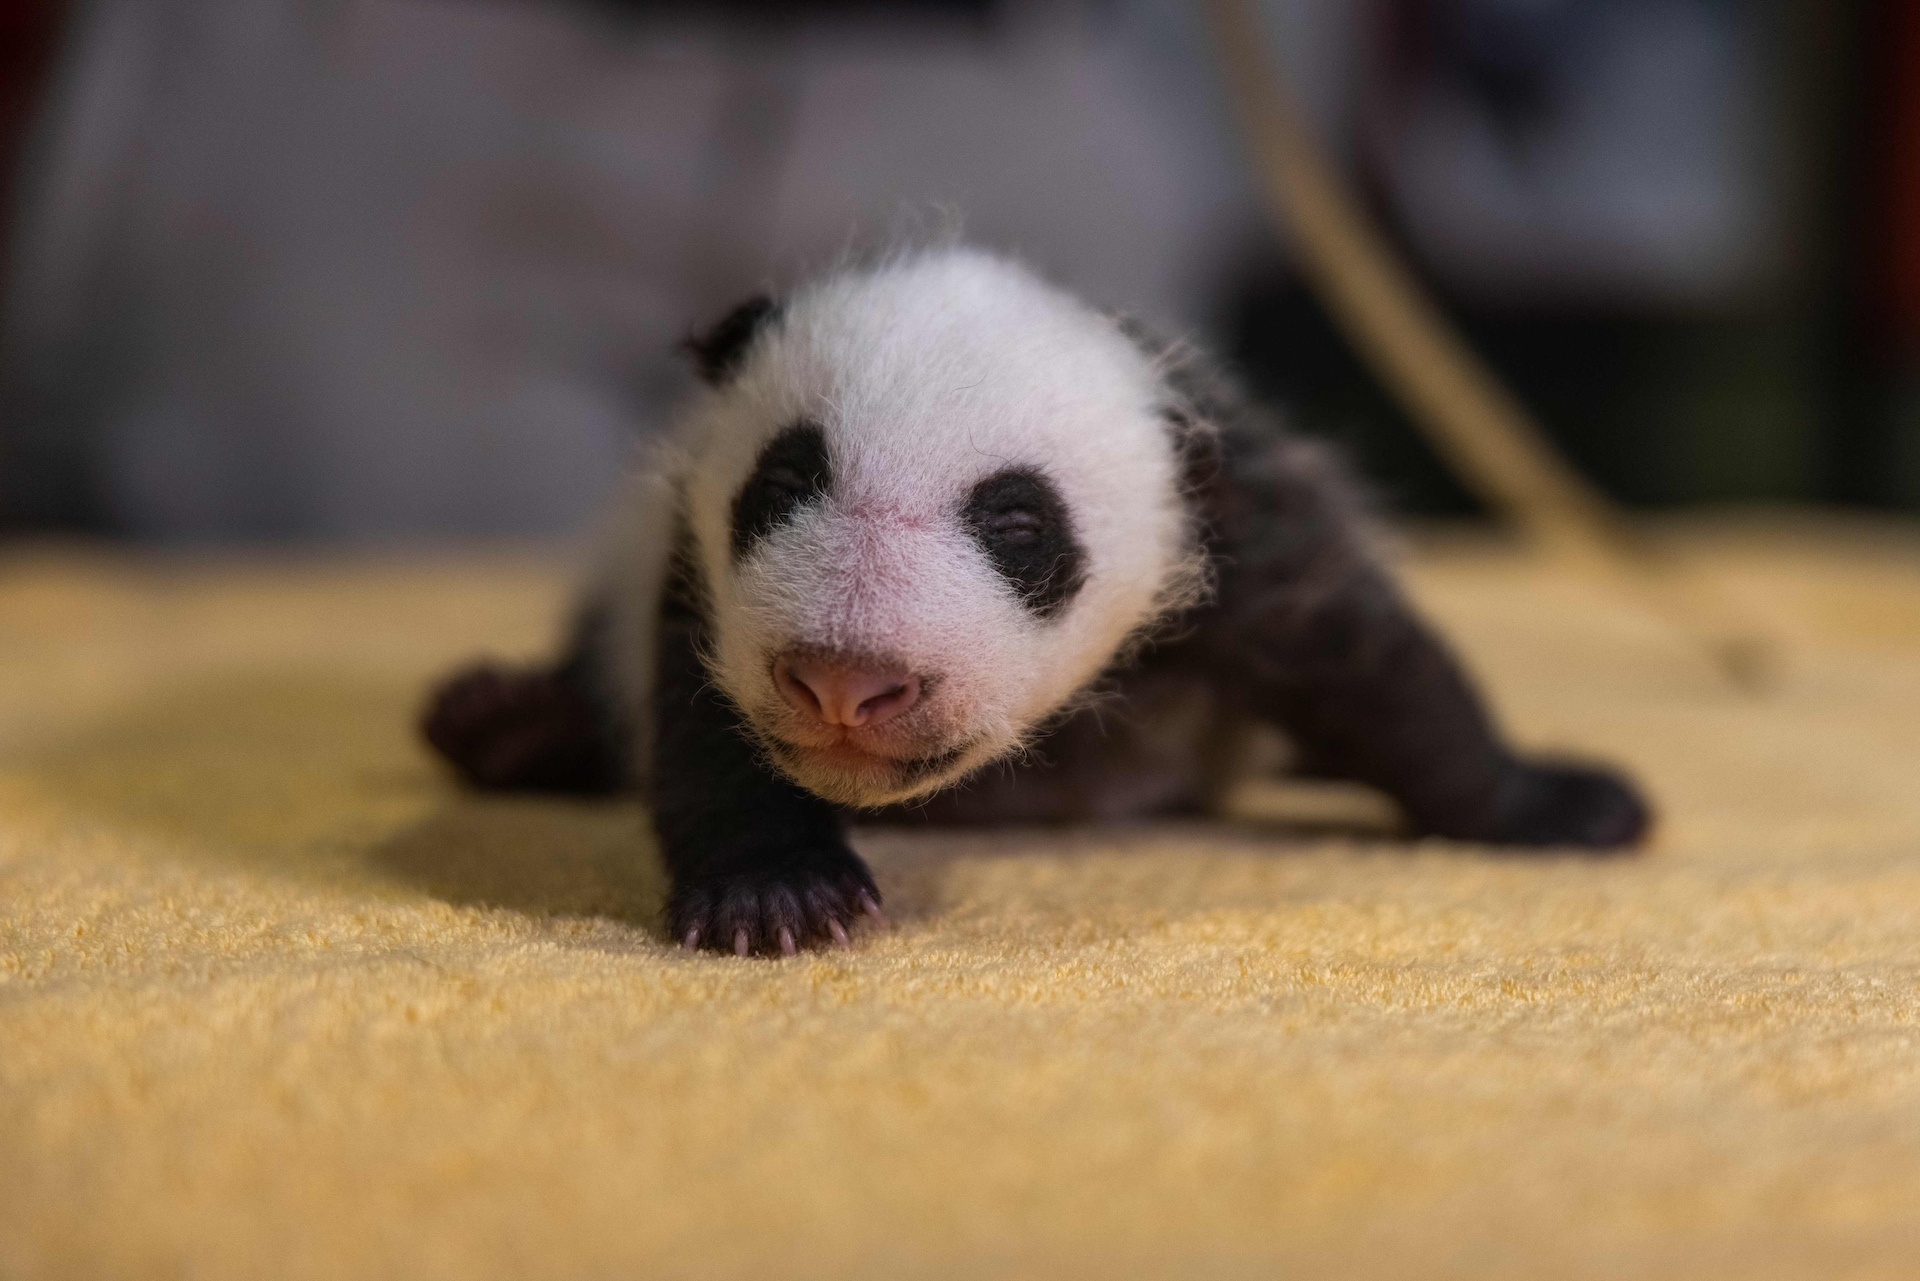 US zoo extends giant panda research deal with Chinese partner